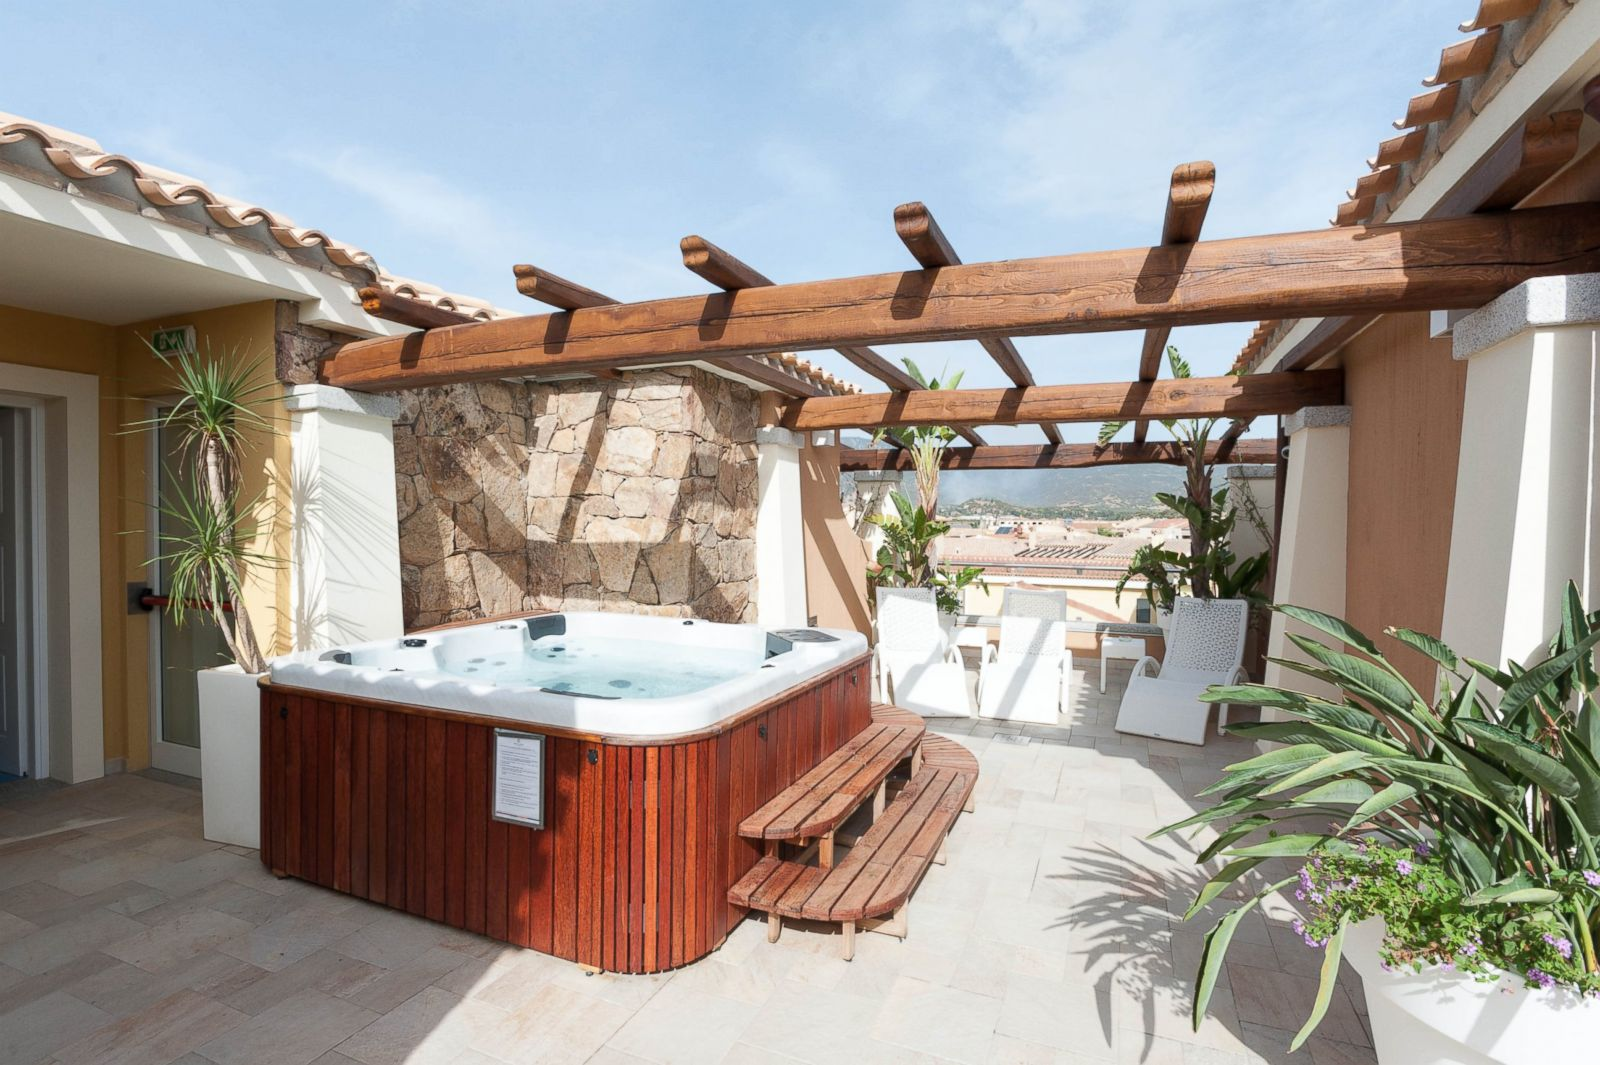 Janas hotel sardinia picture 10 of the best new for Top 10 boutique hotels in the world